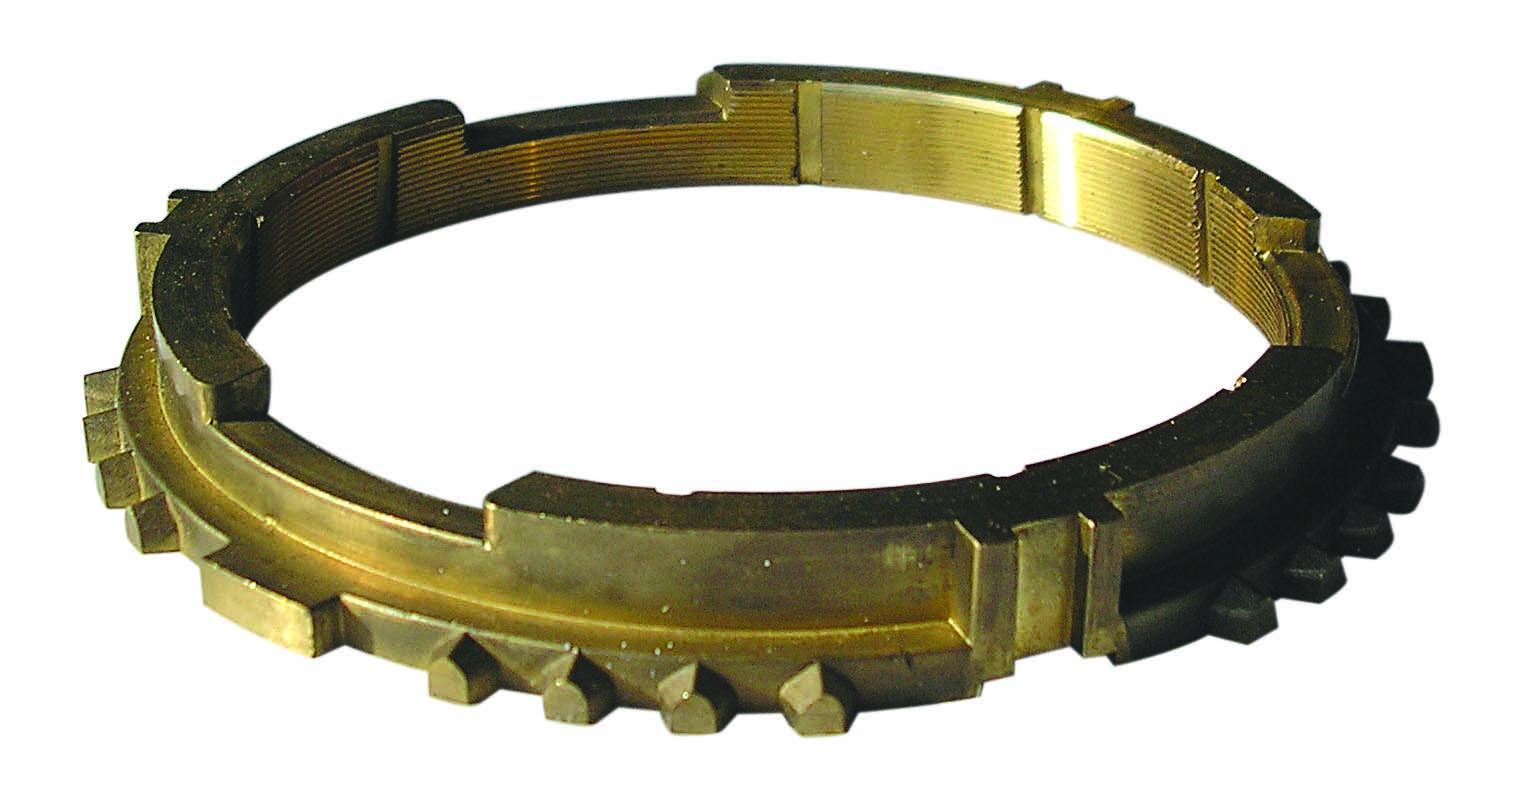 HINO GEARBOX SYNCHRONIZER RING